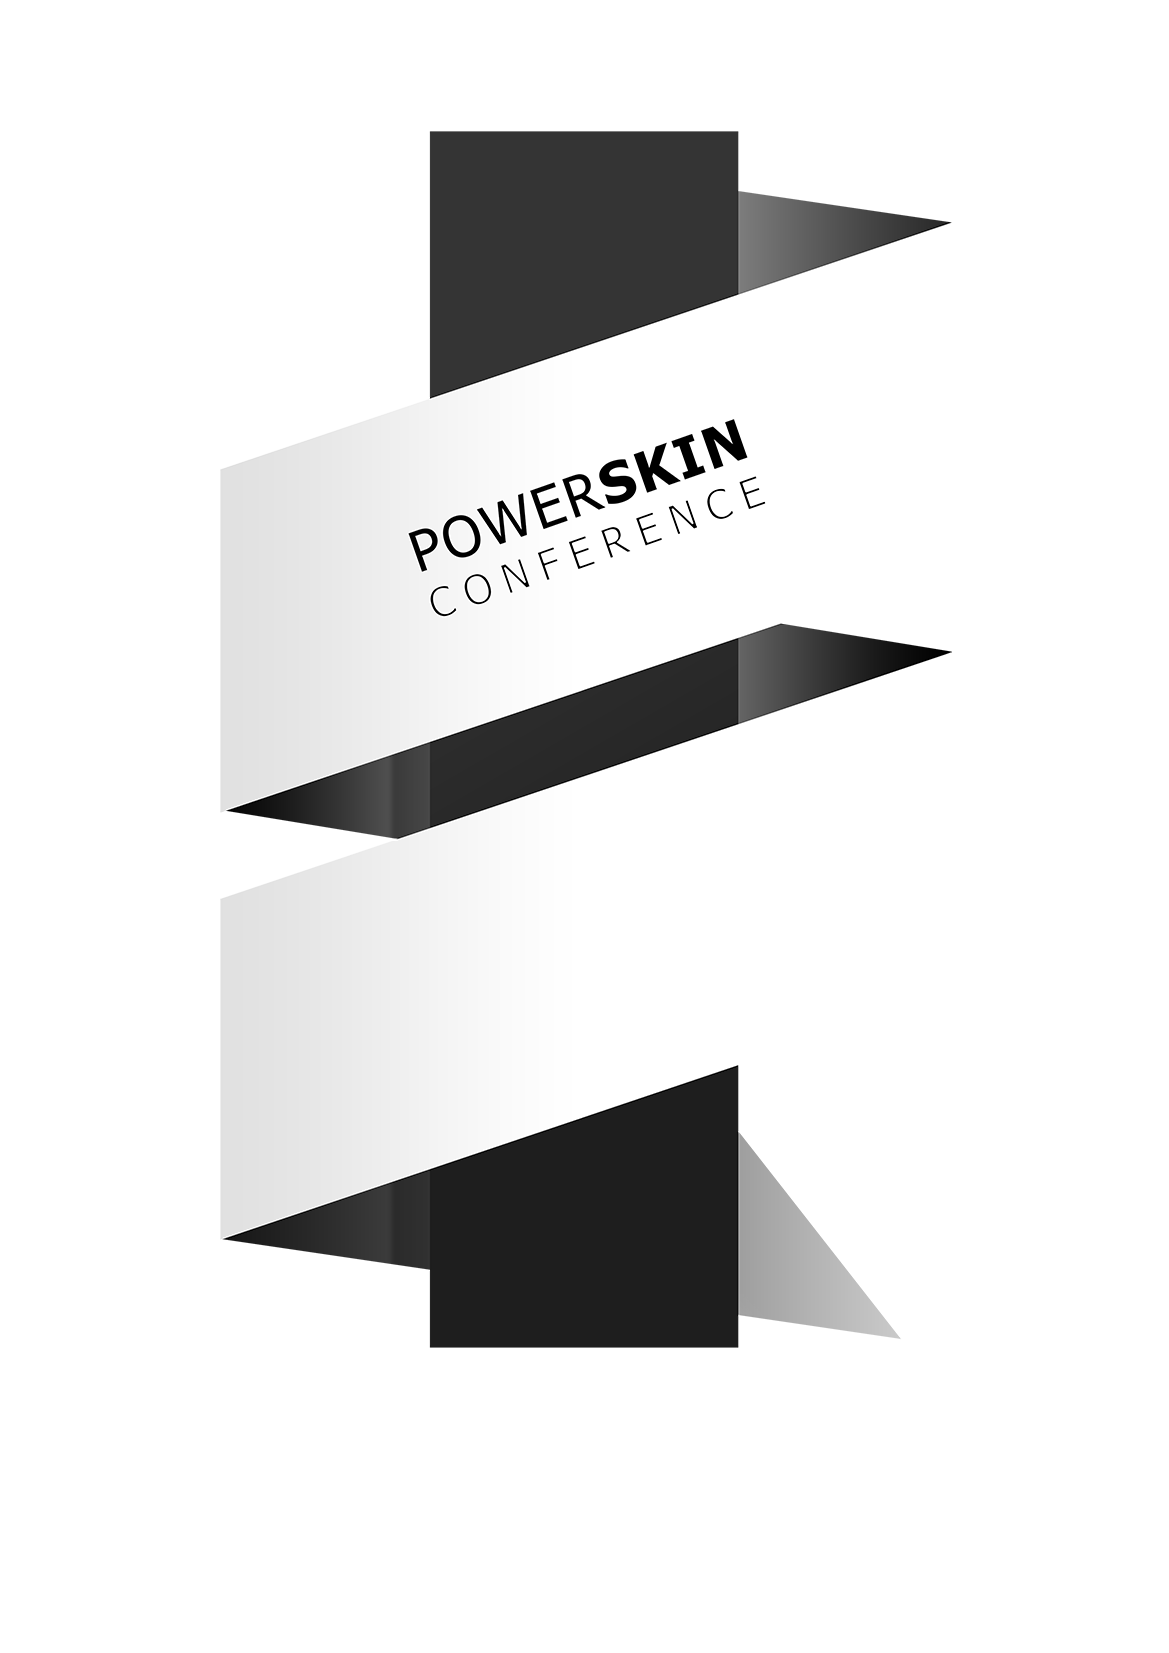 PowerSkin Conference 2019